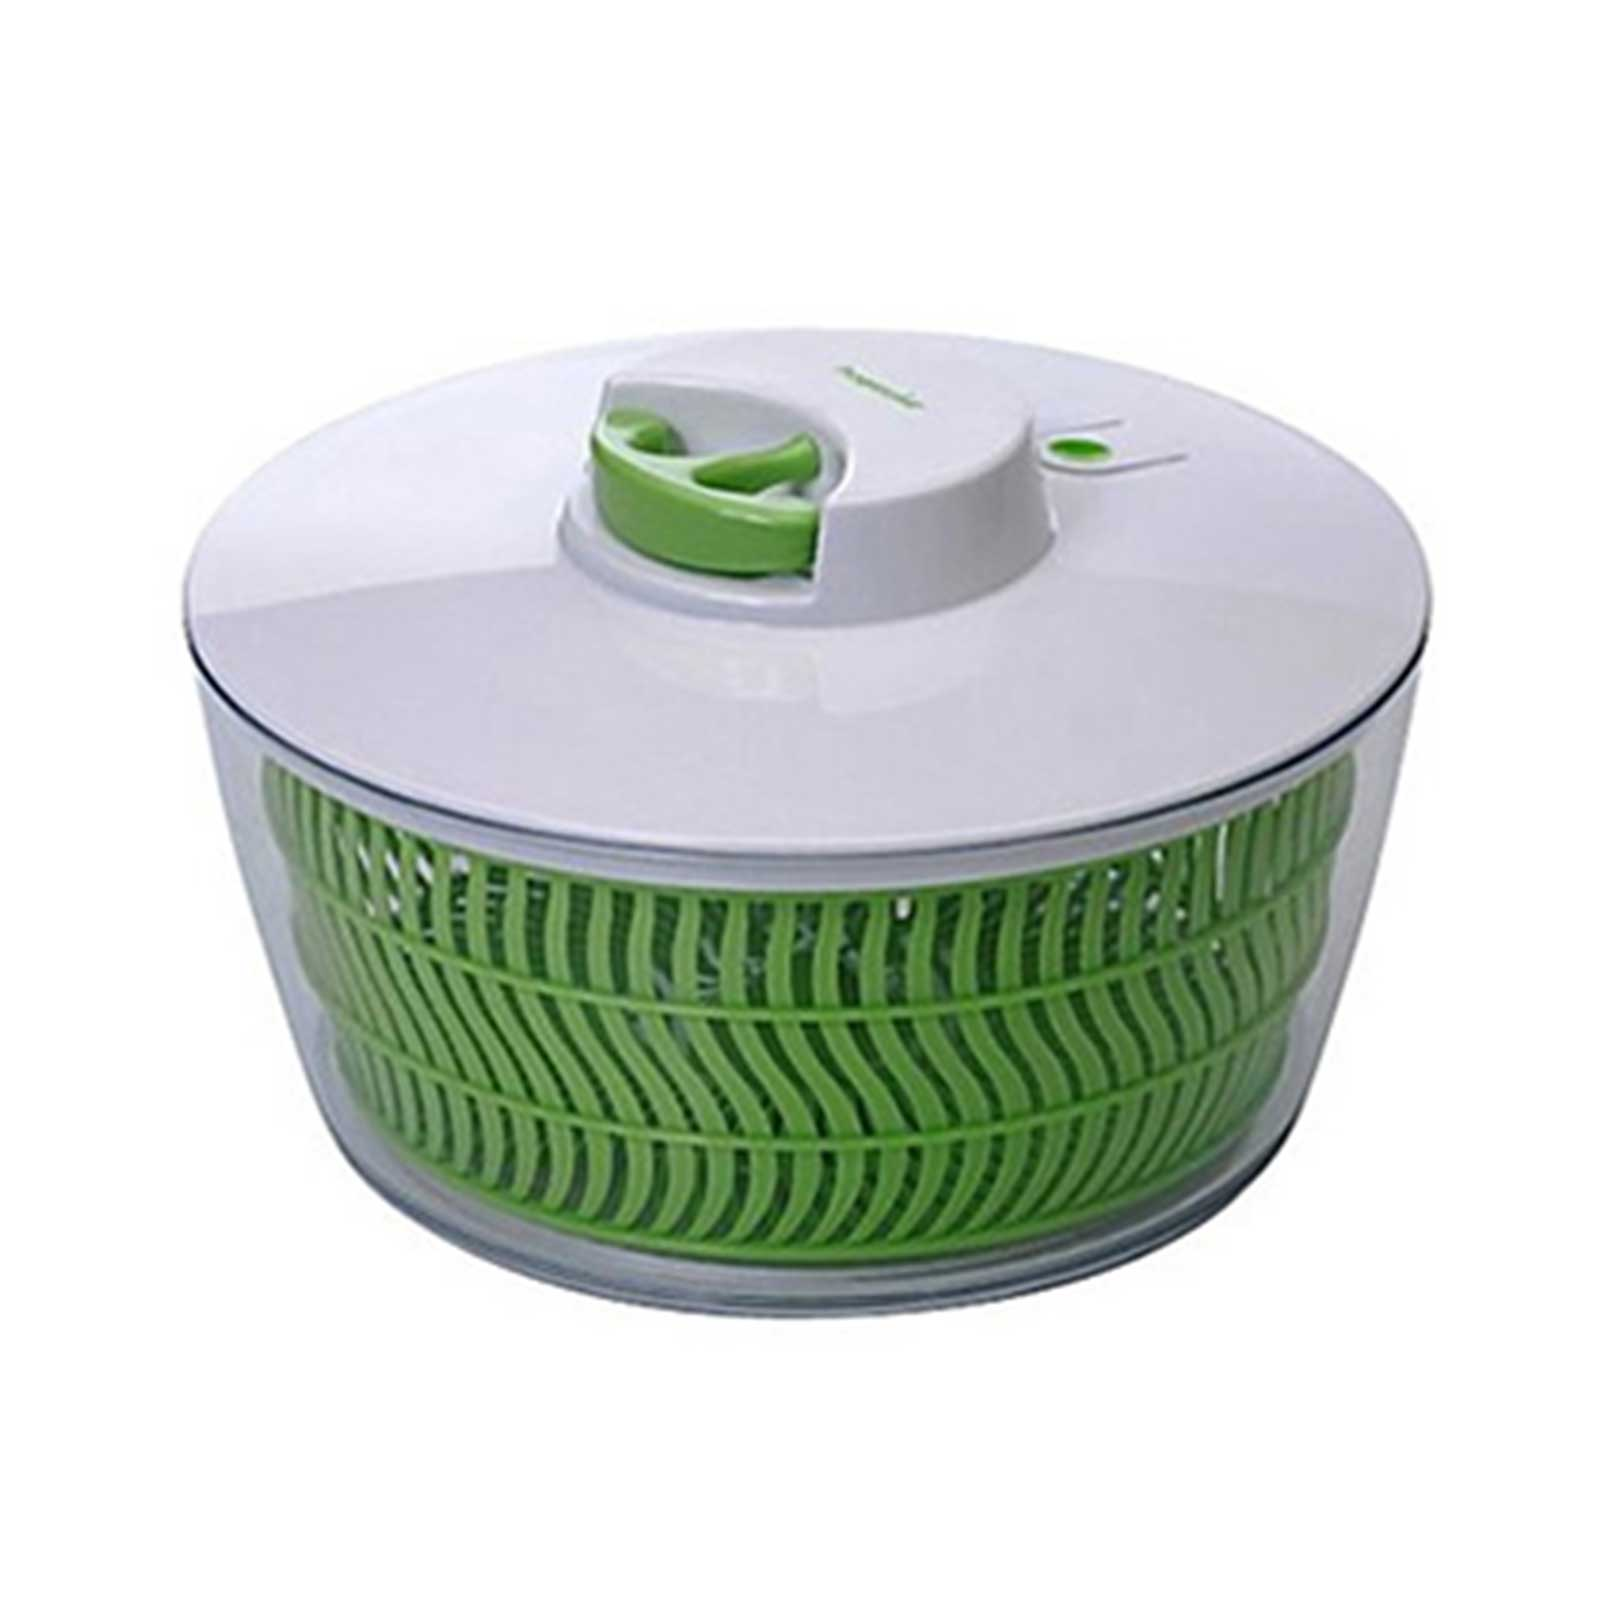 Salad Spinner by Progressive - Dry Salads & Microgreens - Centrifugal